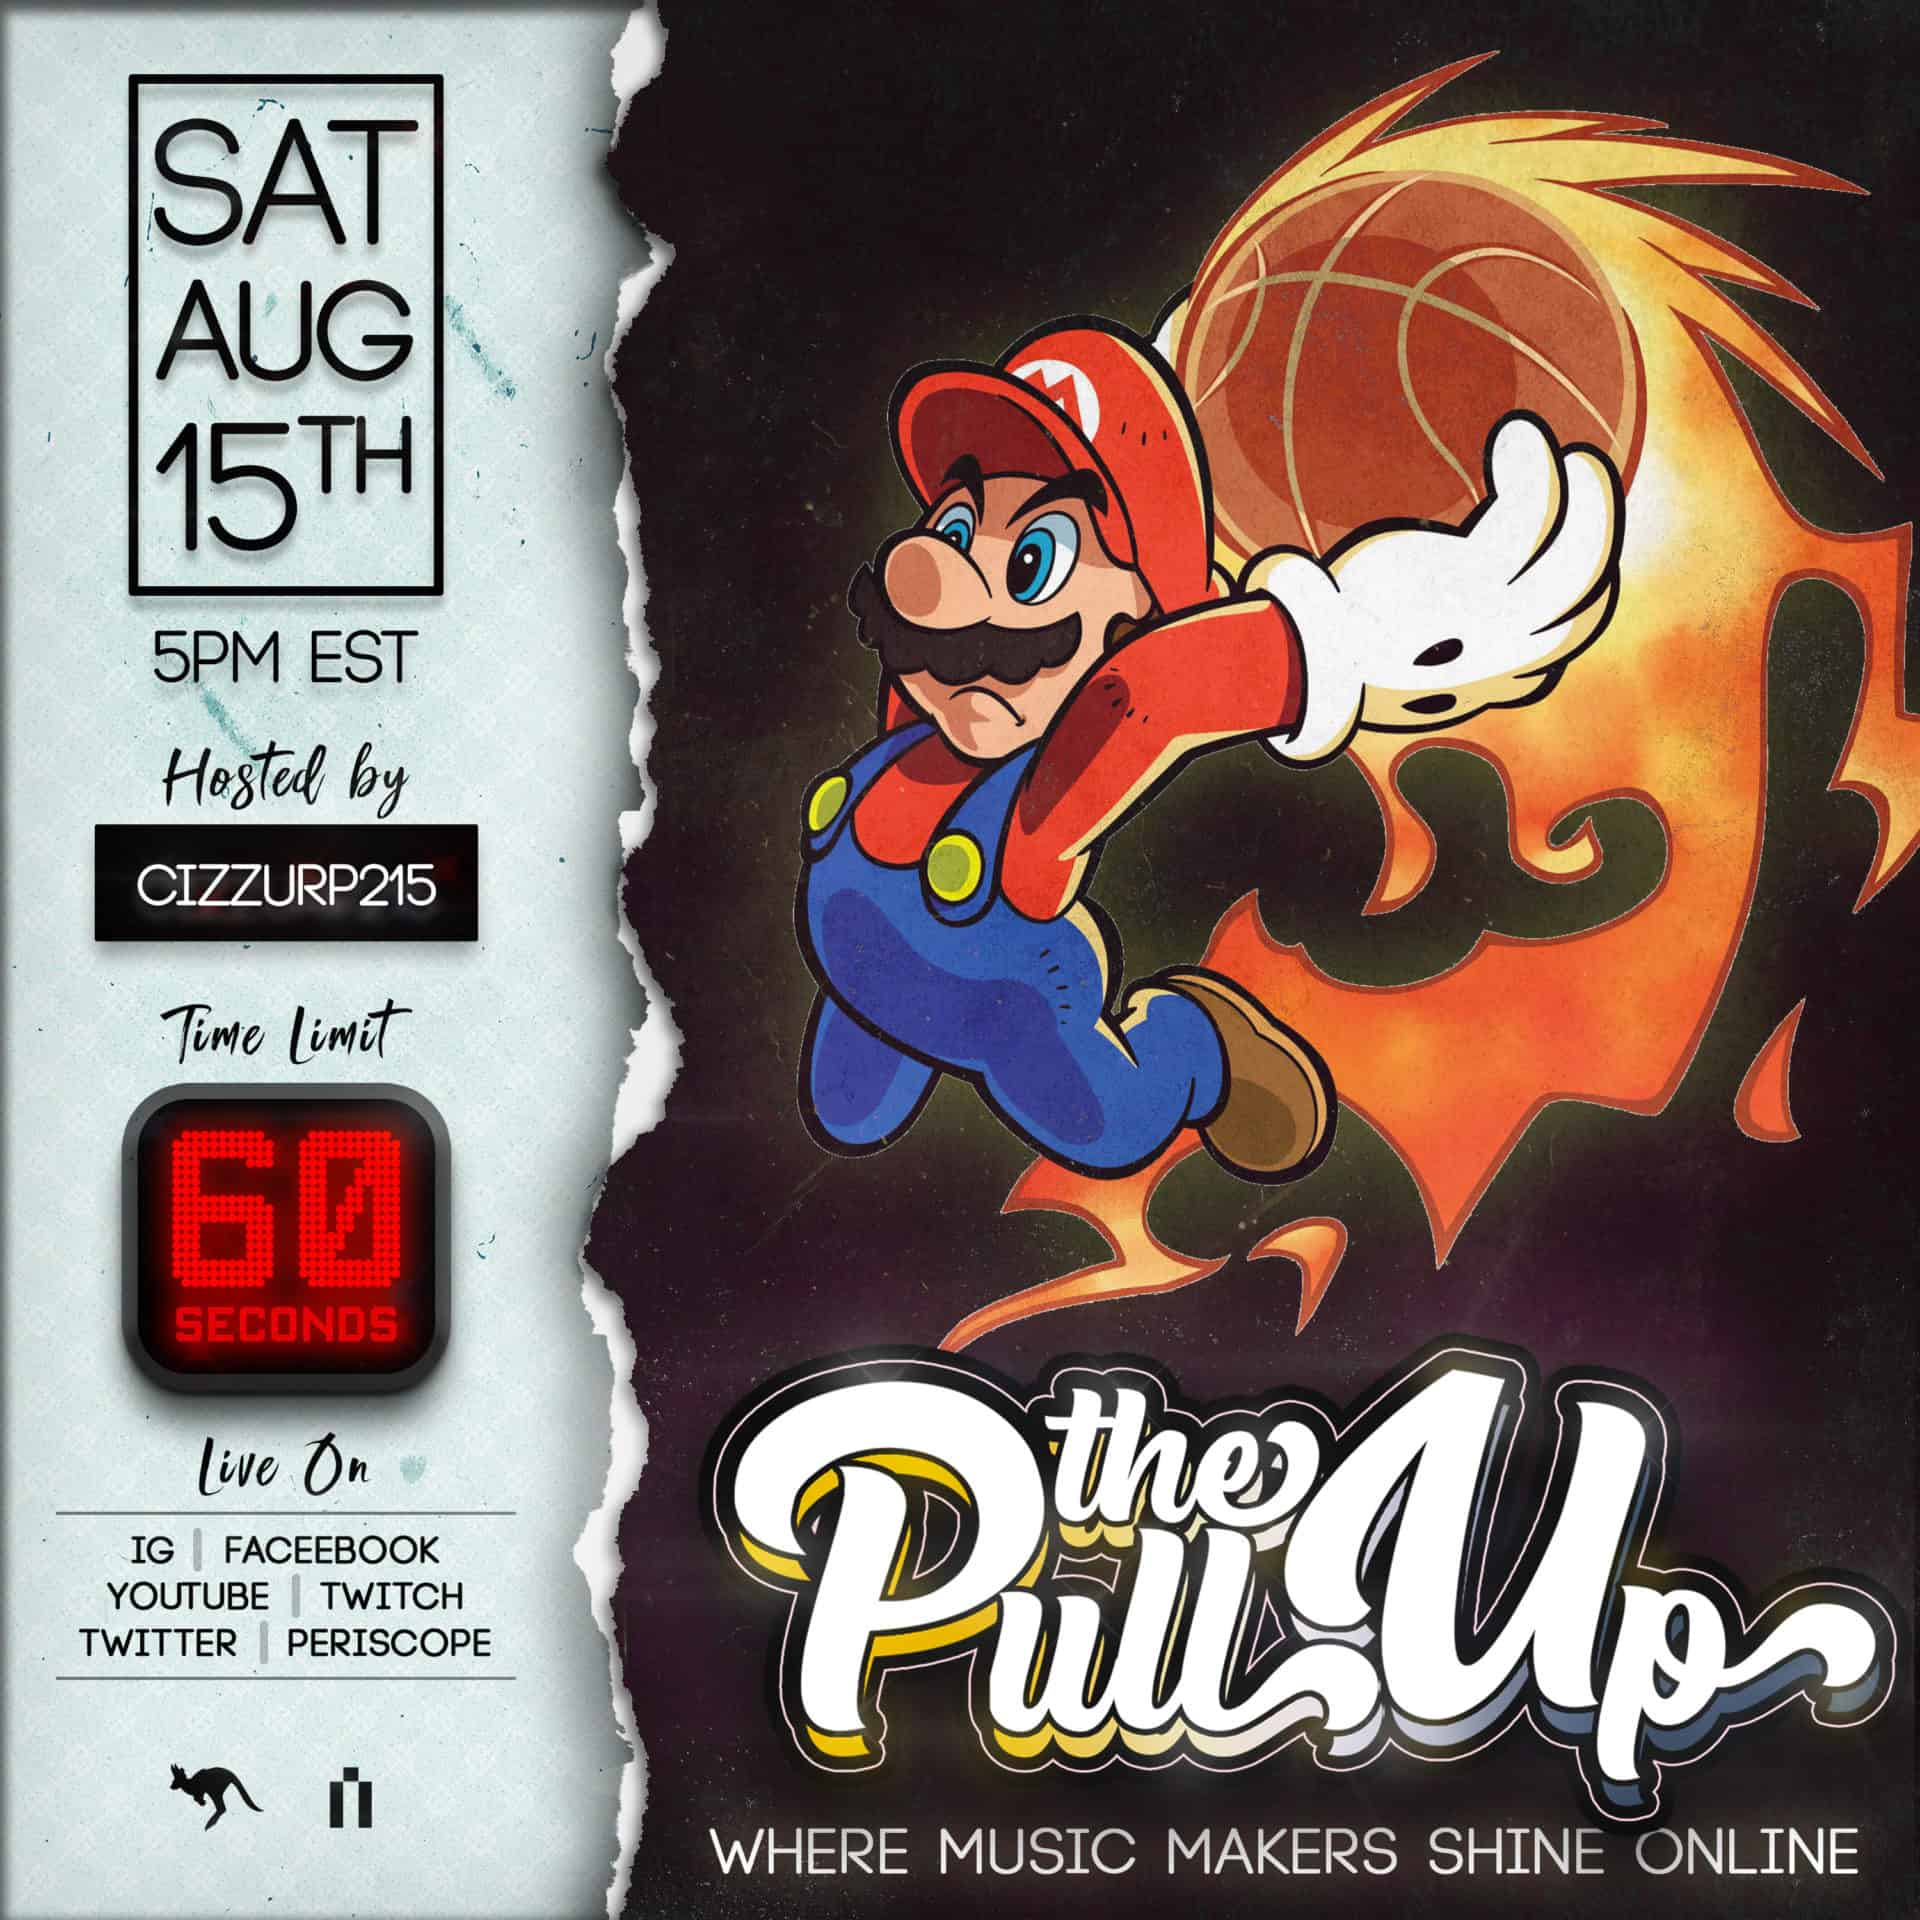 The Pull Up 20 Flyer